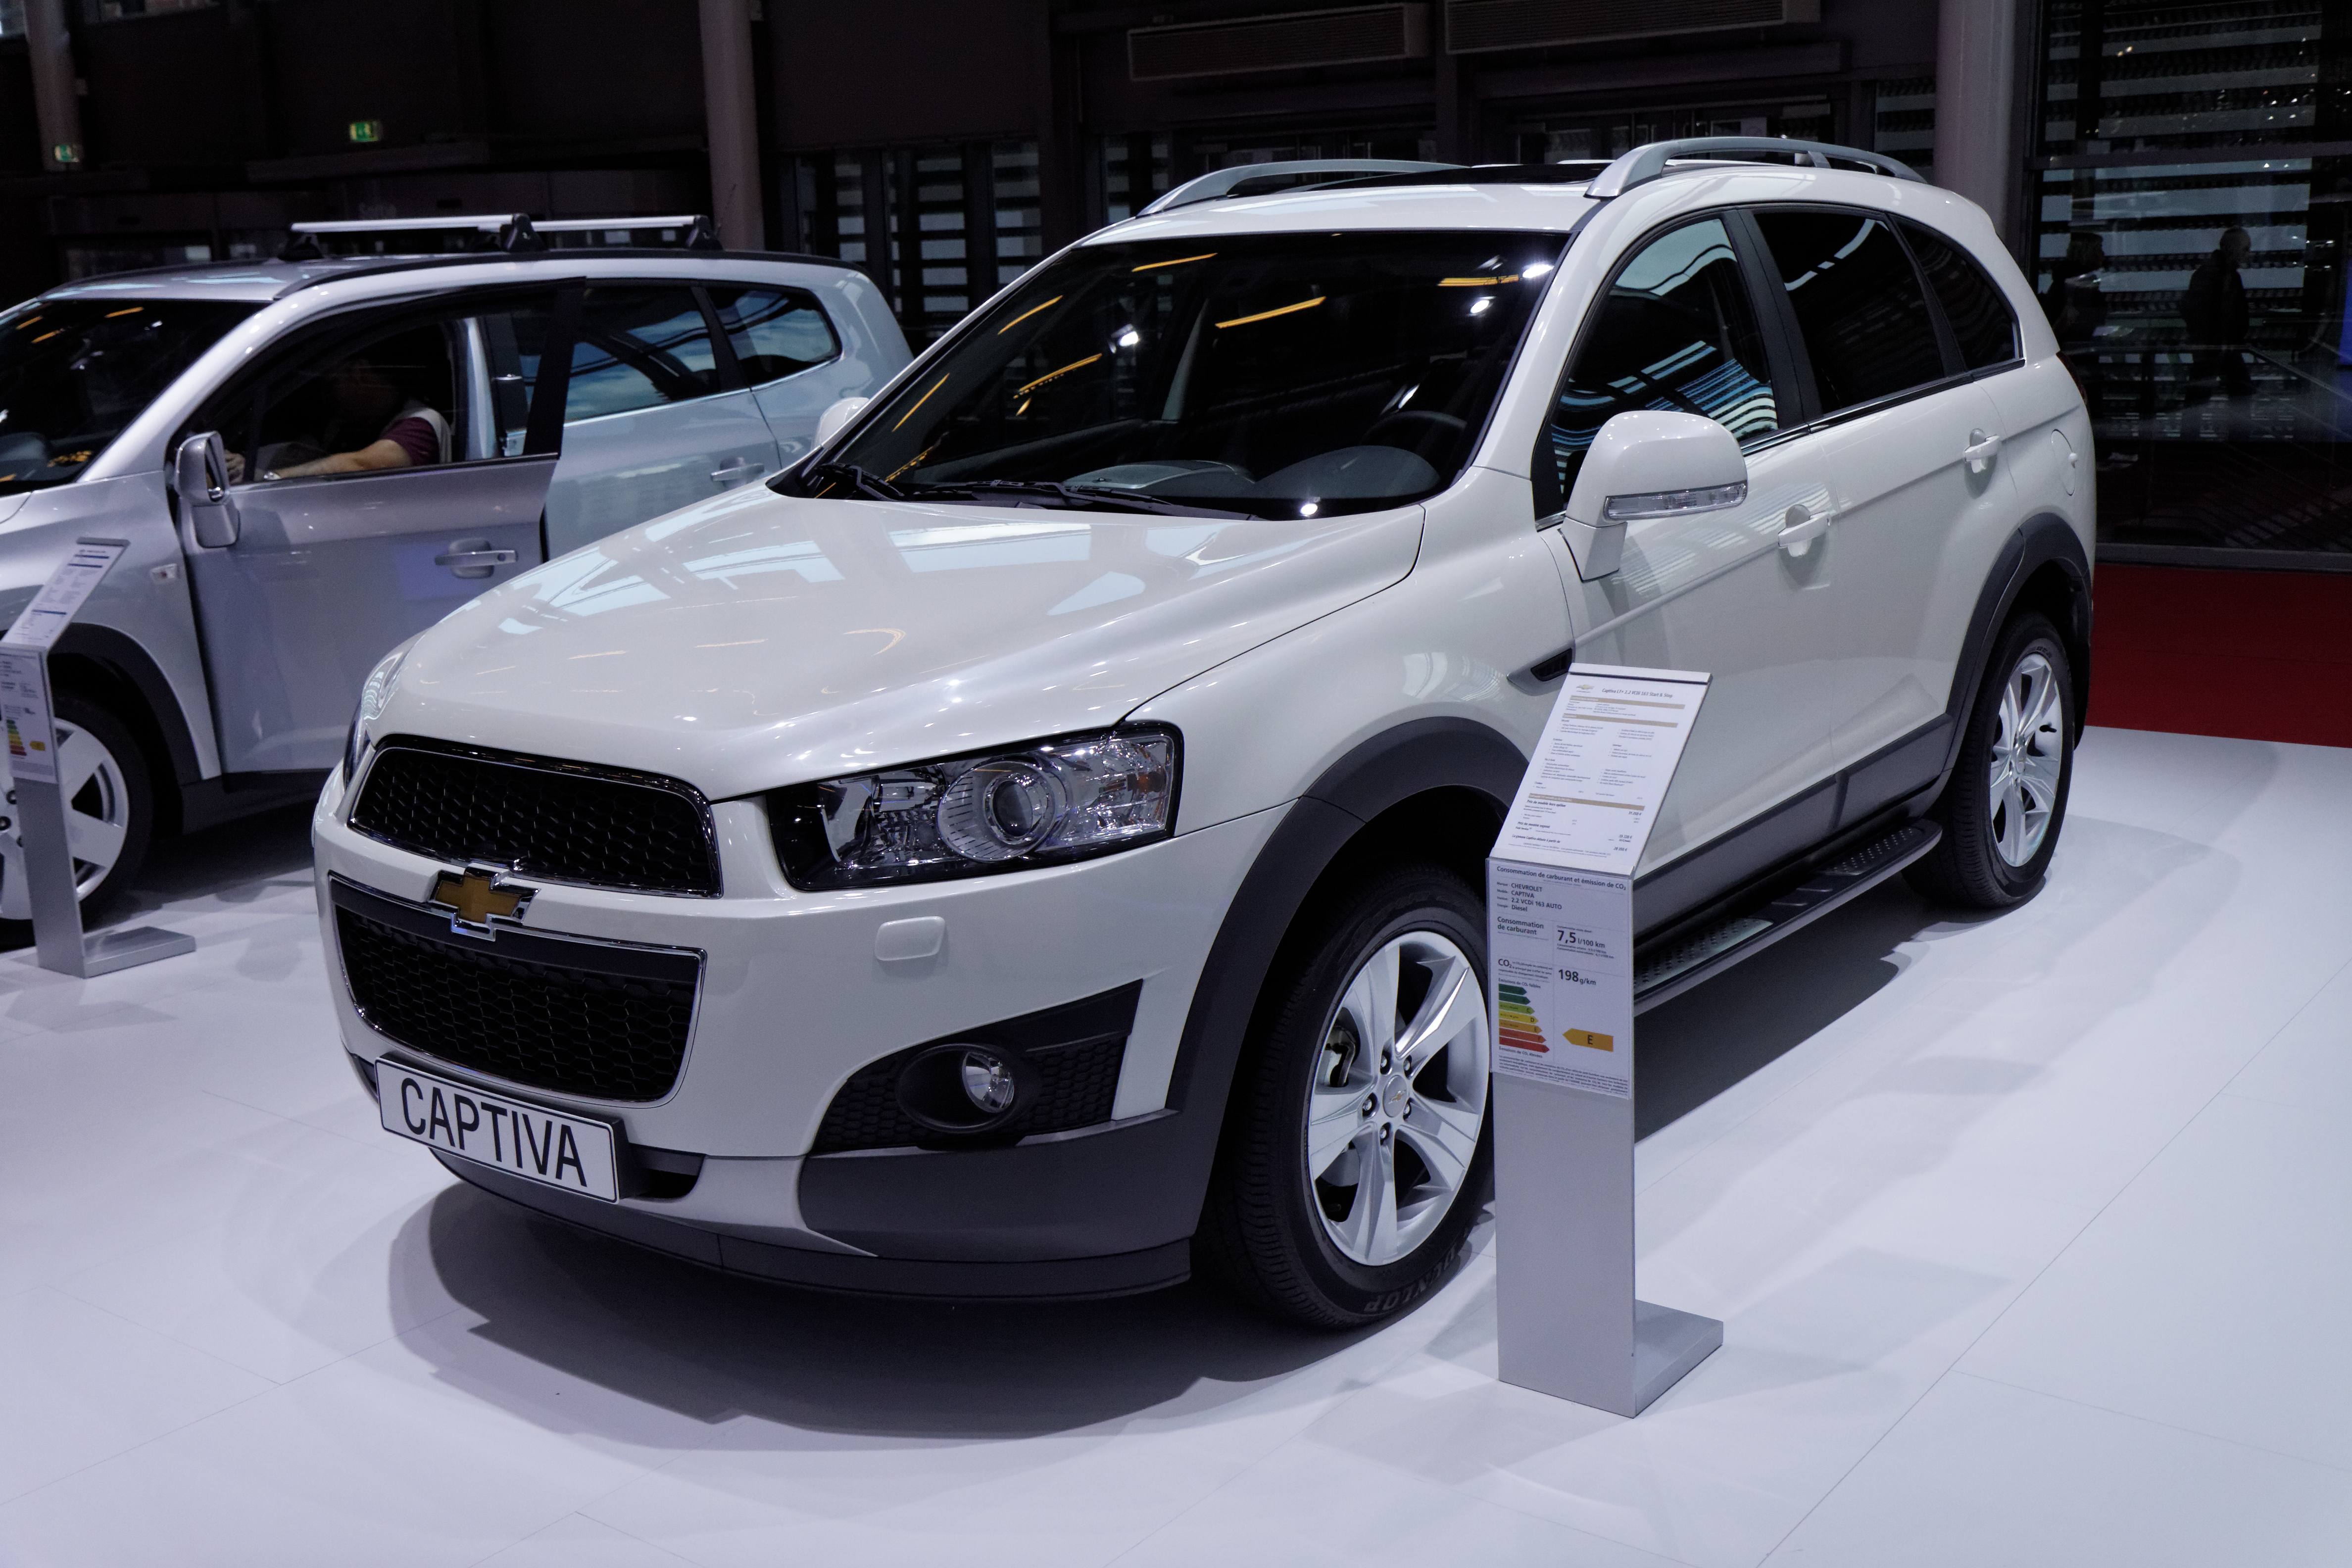 file chevrolet captiva mondial de l 39 automobile de paris 2012 wikimedia commons. Black Bedroom Furniture Sets. Home Design Ideas